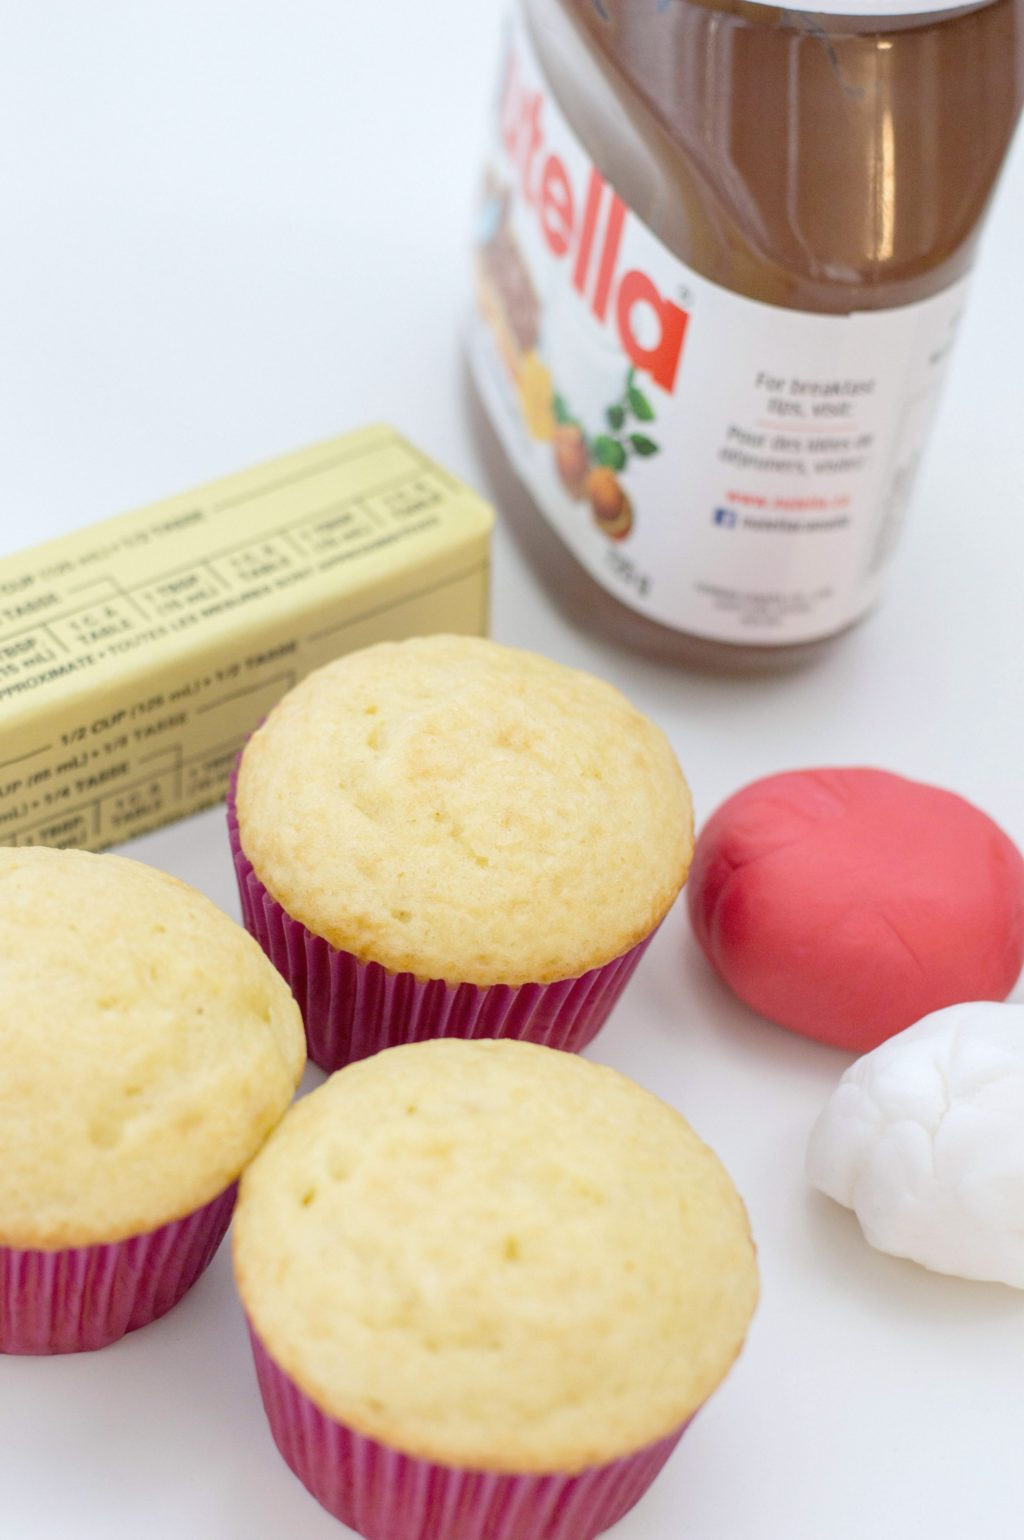 Ingredients, cupcakes, butter, fondant, and Nutella.